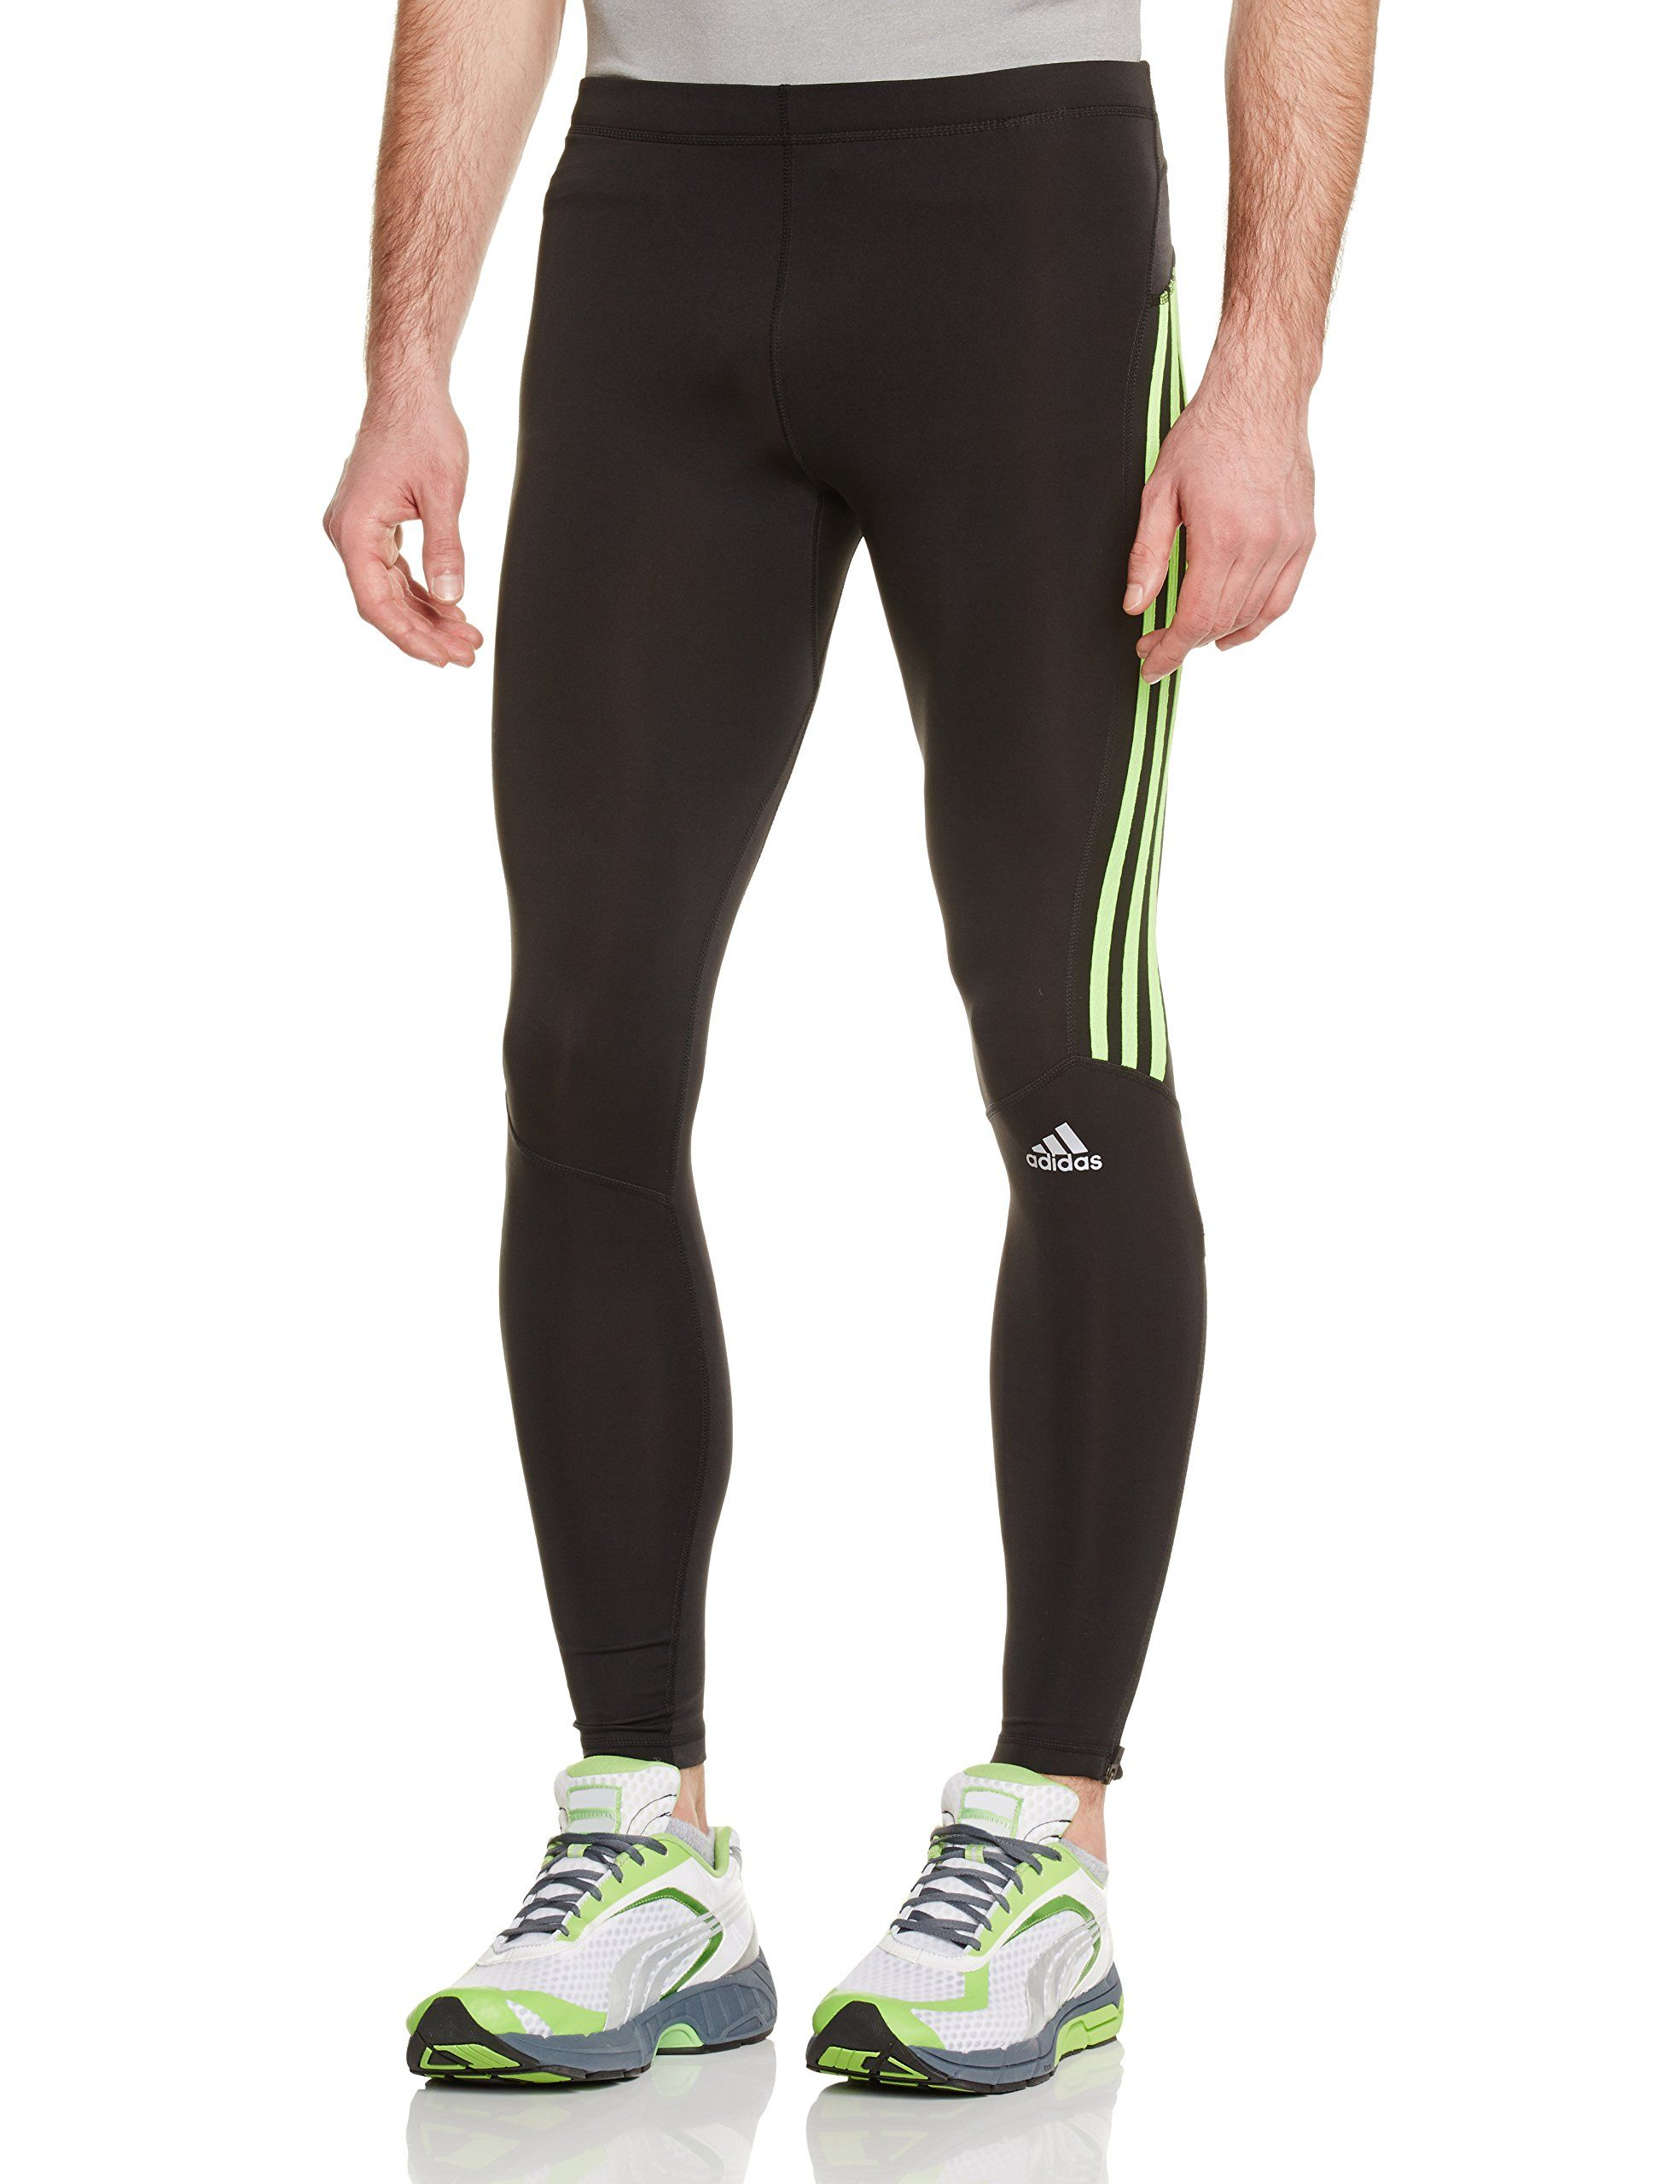 74161dc529b38 adidas Men's Response Long Tight: Amazon.co.uk: Sports & Outdoors ...